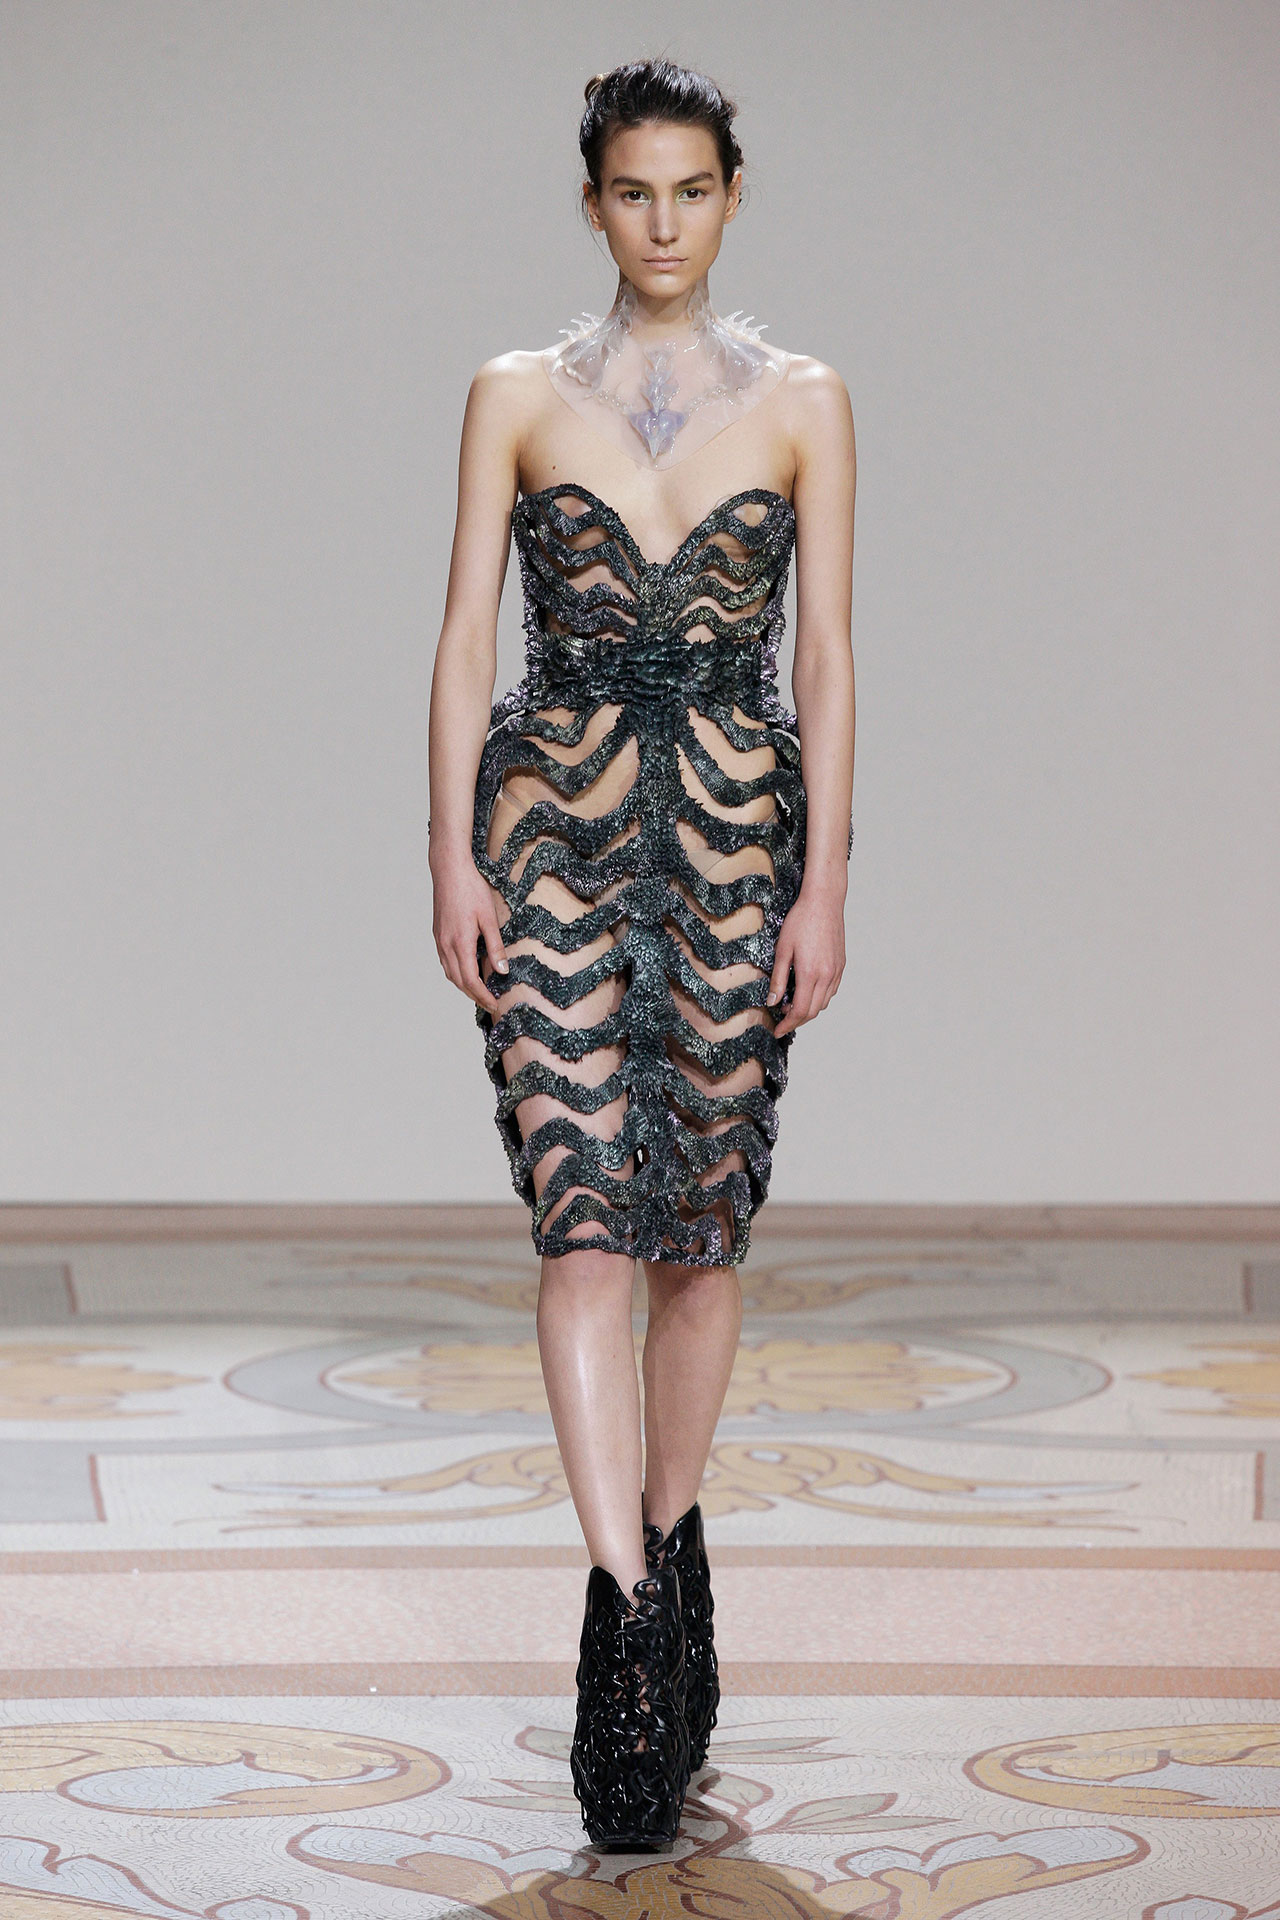 Designed by Iris van Herpen, with Jólan van der Wiel, Dress, from Wilderness Embodied Couture collection, 2013, Resin, iron filings. Courtesy of Iris van Herpen.